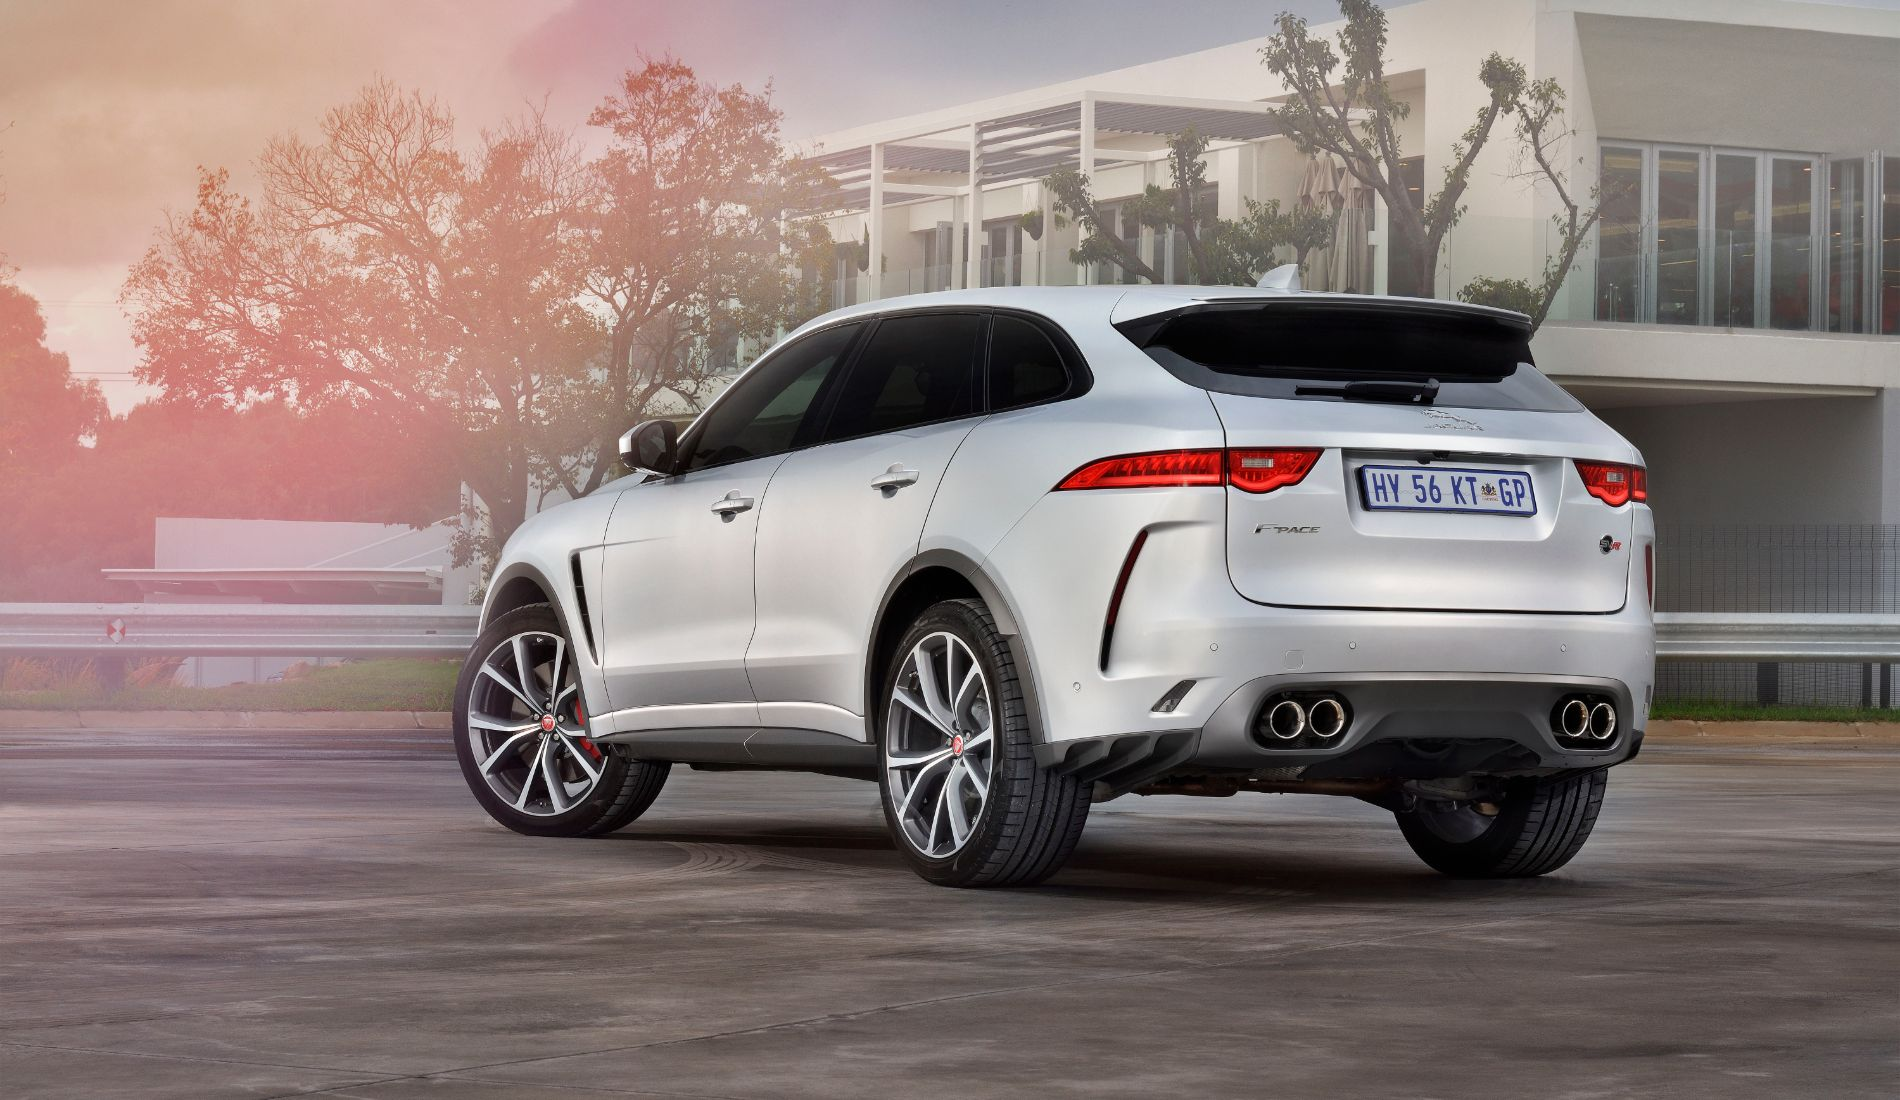 The driver's sports SUV that nobody seems to be noticing…but should.